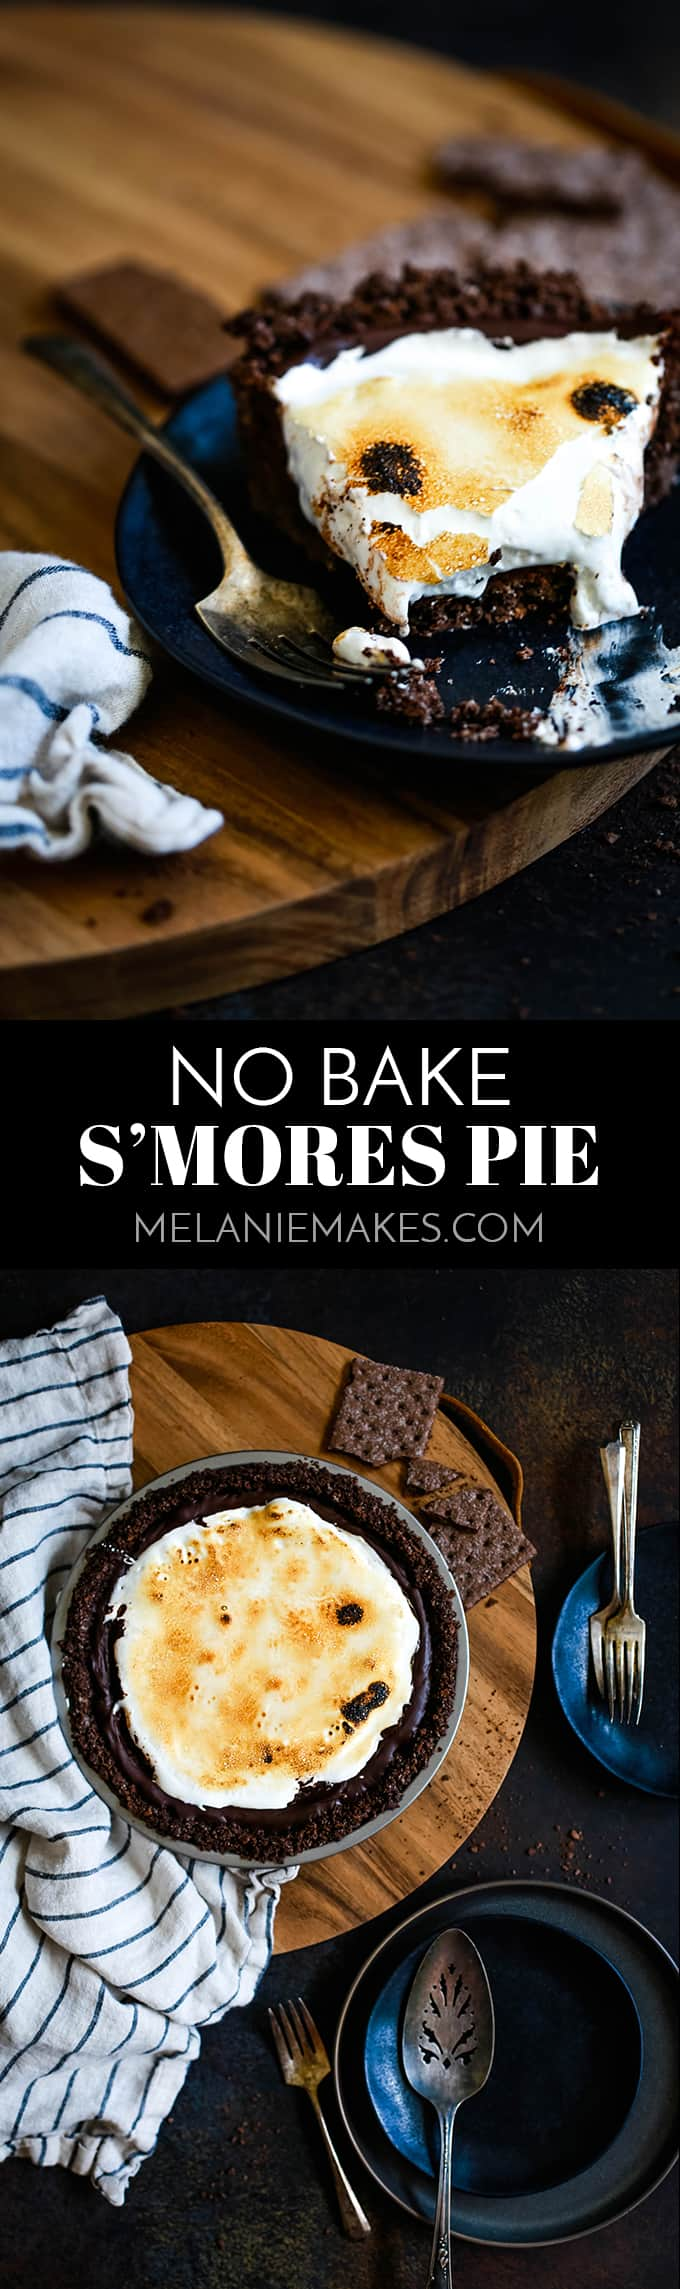 This Double Chocolate No Bake S'mores Pie is filled with chocolate ganache before being topped with a torched cloud of marshmallow fluff. #nobake #pie #smores #chocolate #easyrecipe #marshmallows